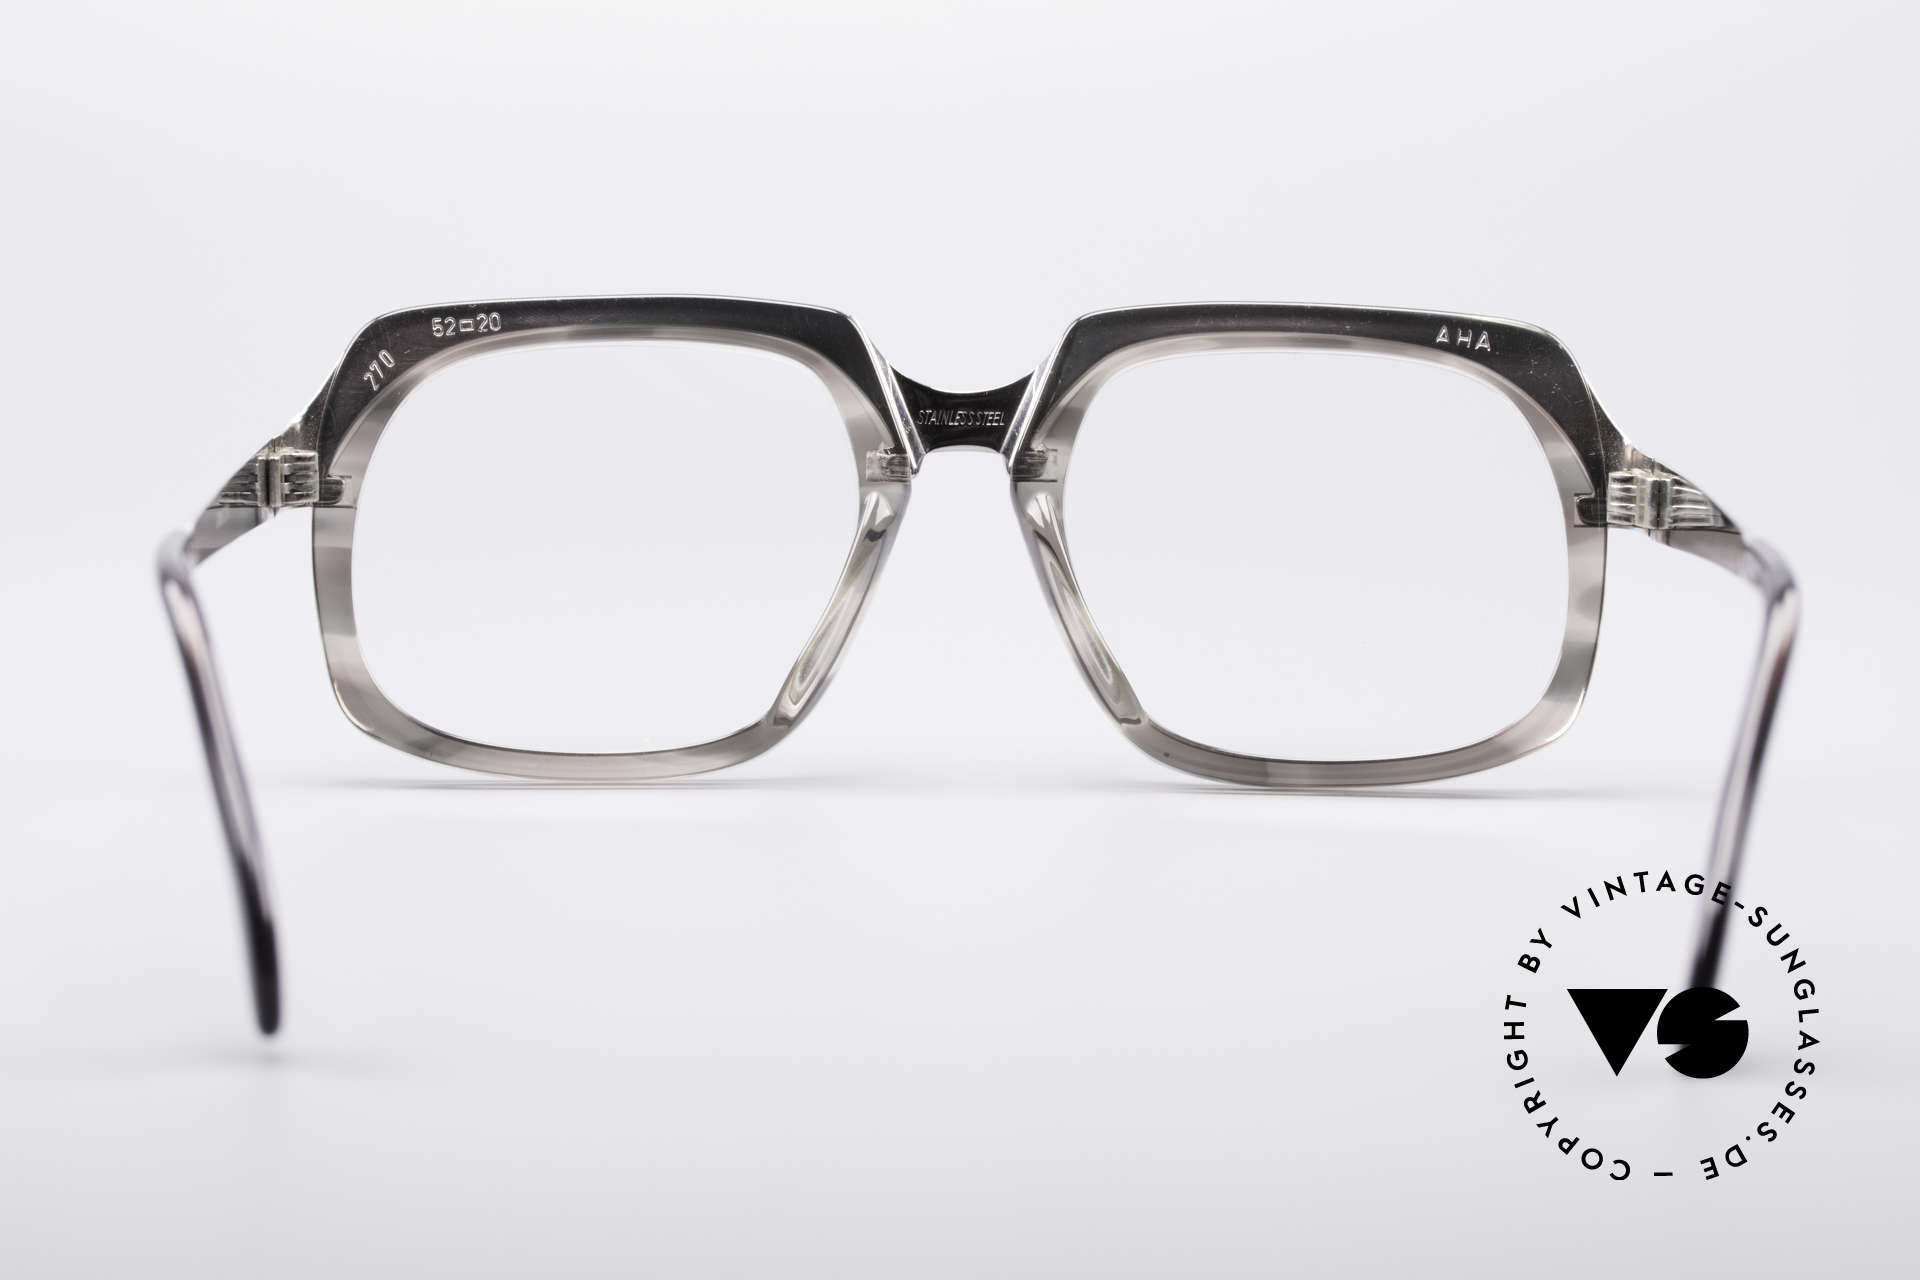 Metzler 6546 True Vintage No Retro Frame, the frame is made for lenses of any kind (optical / sun), Made for Men